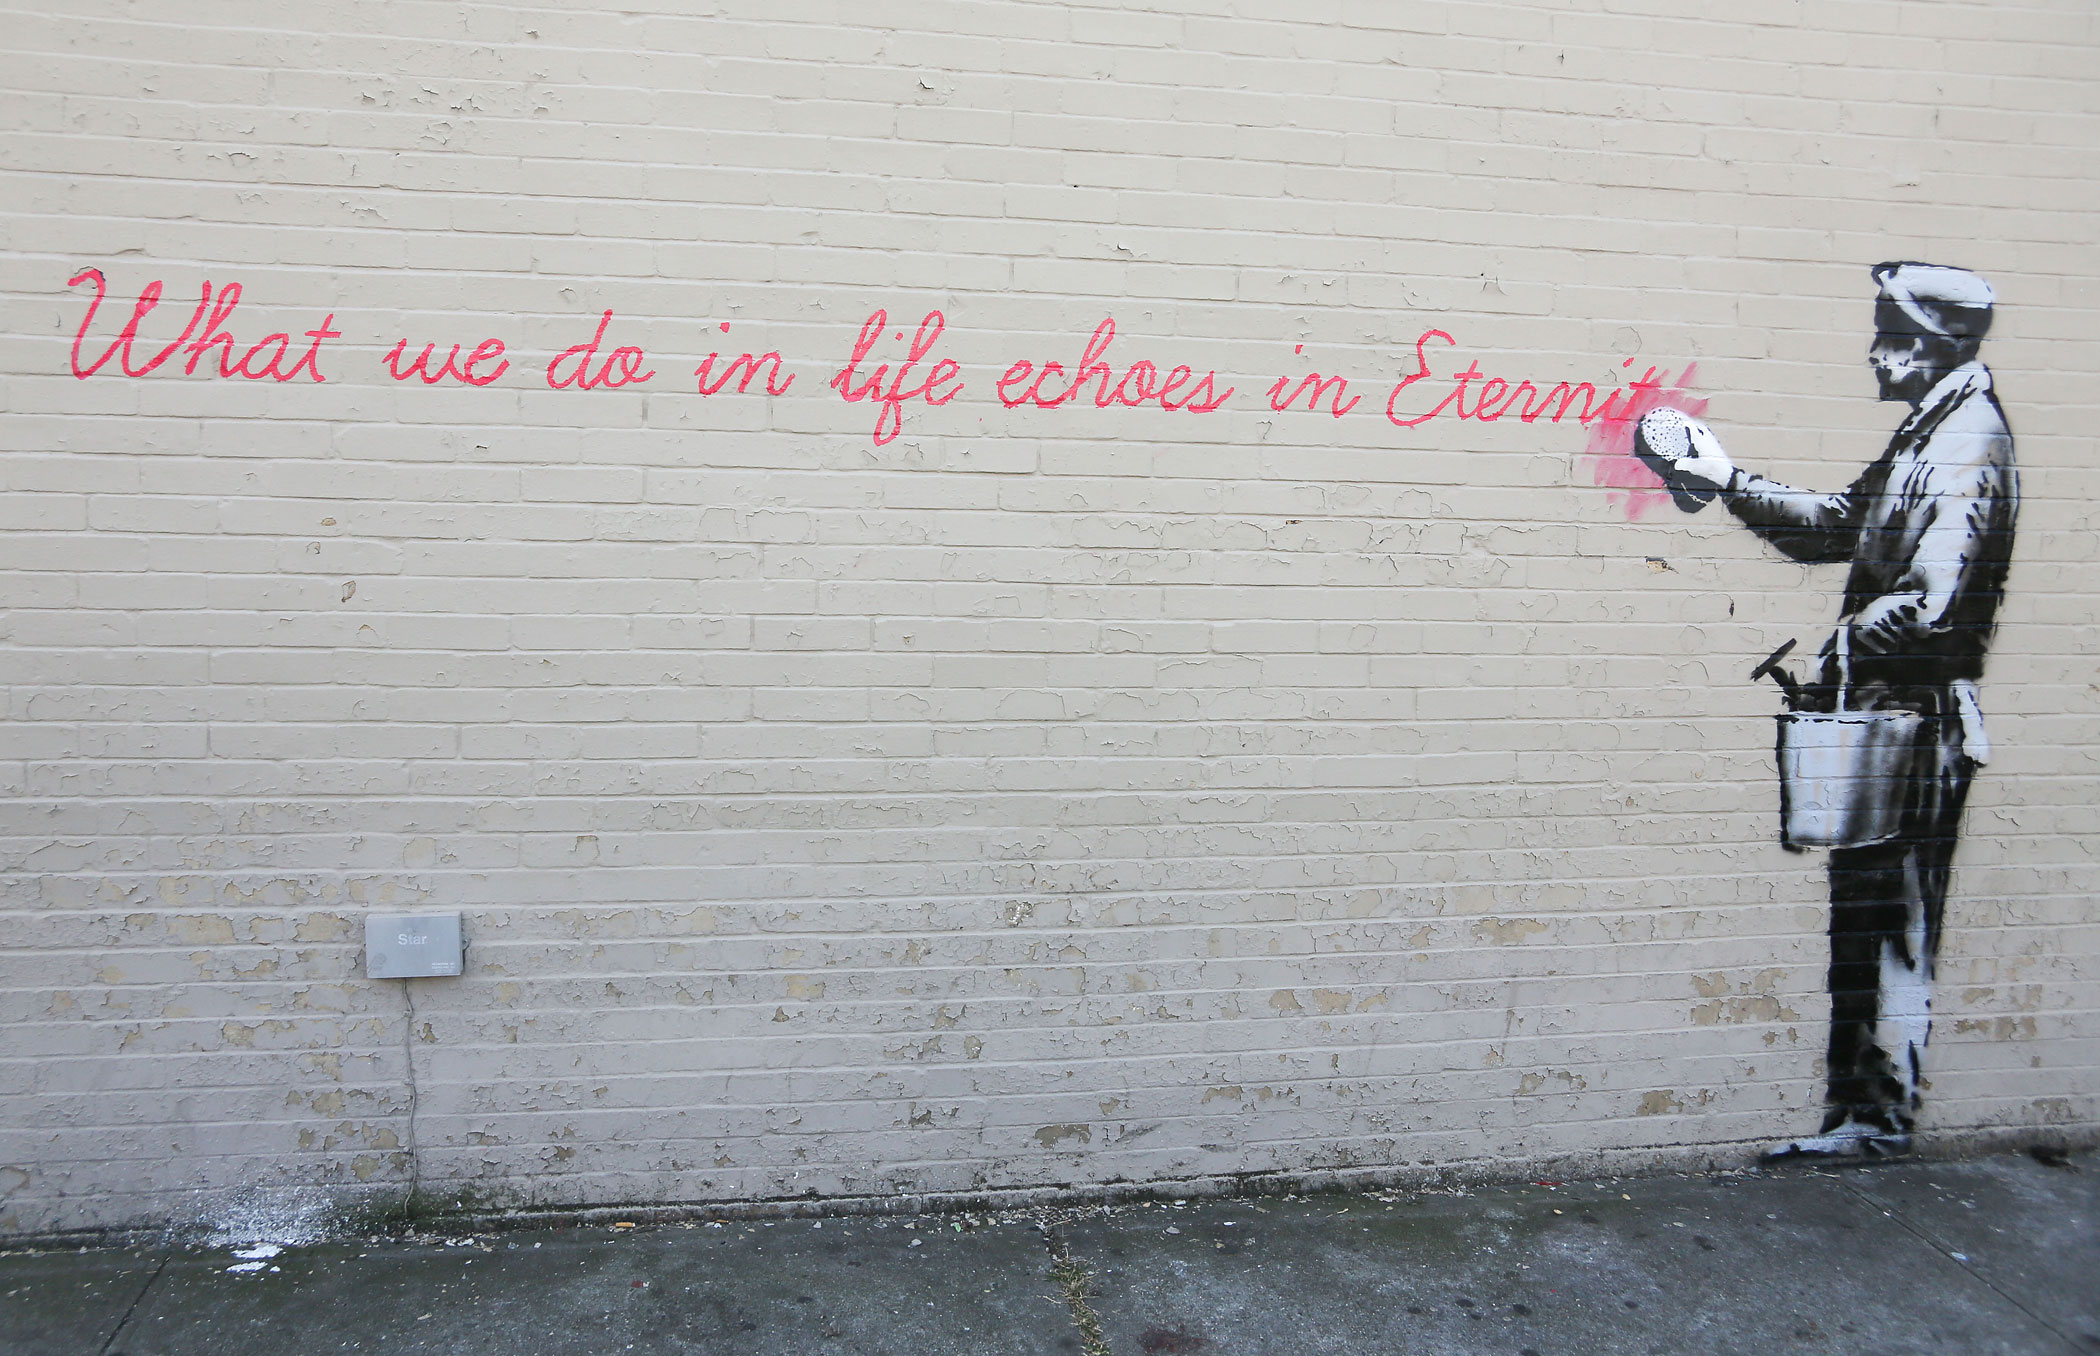 Banksy's 'What we do in life echoes in Eternity' seen in New York City on Oct. 14, 2013.